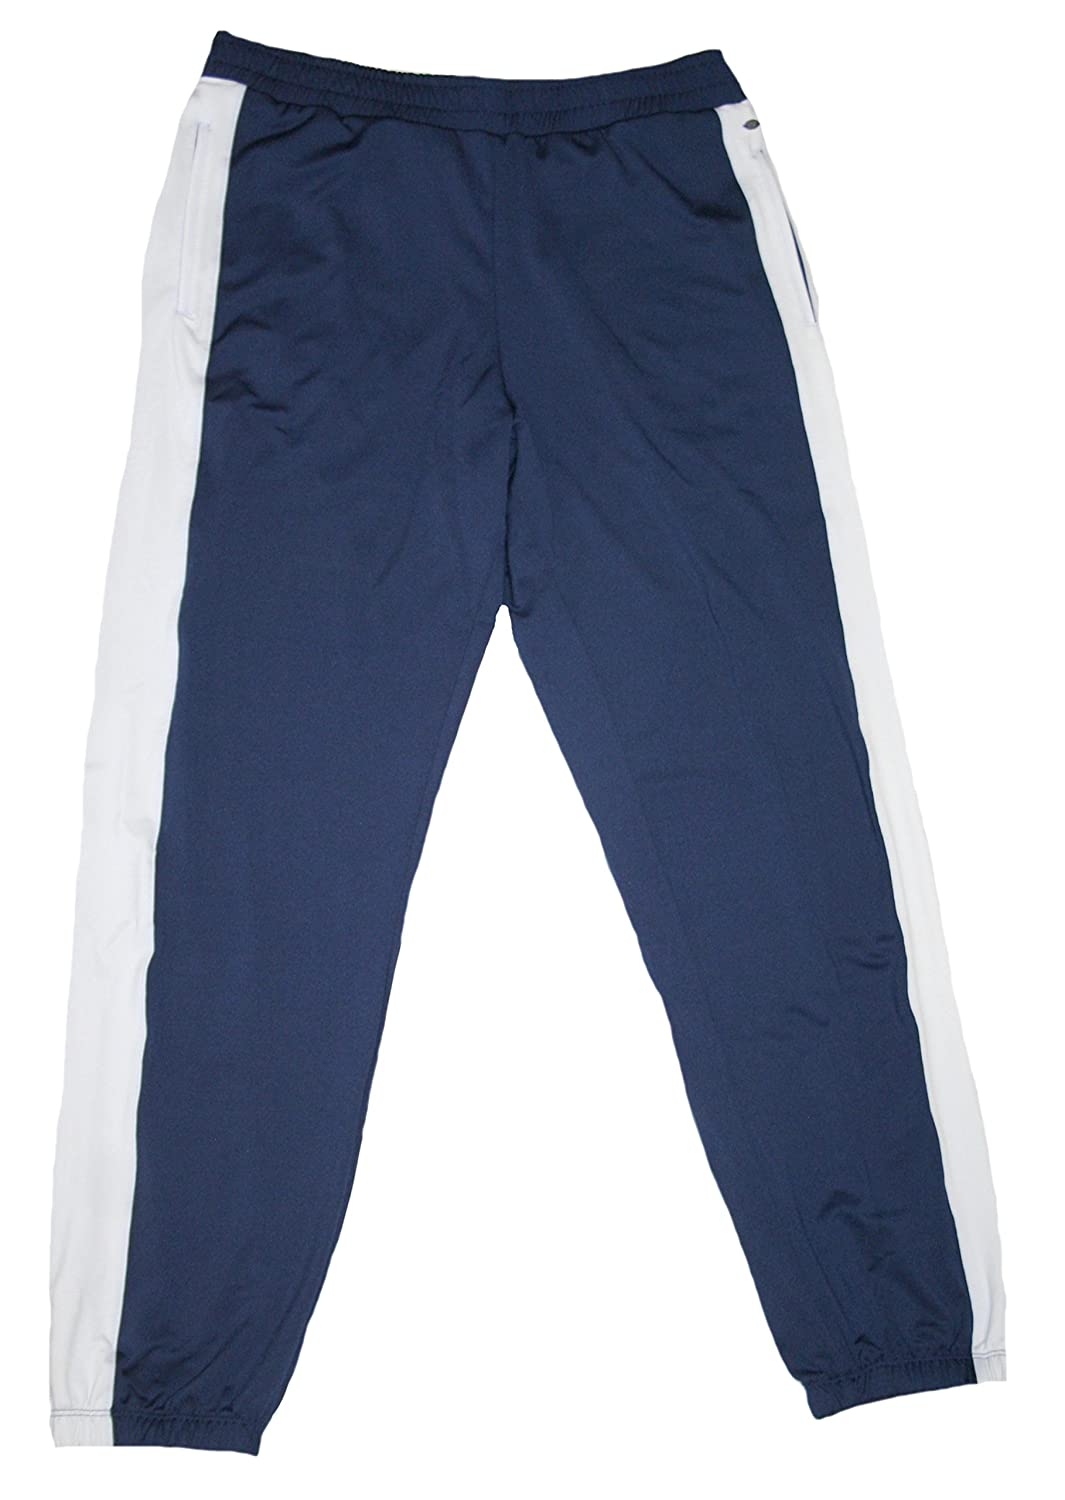 bluee White American Eagle Outfitters Womens' Satin Sports Pants